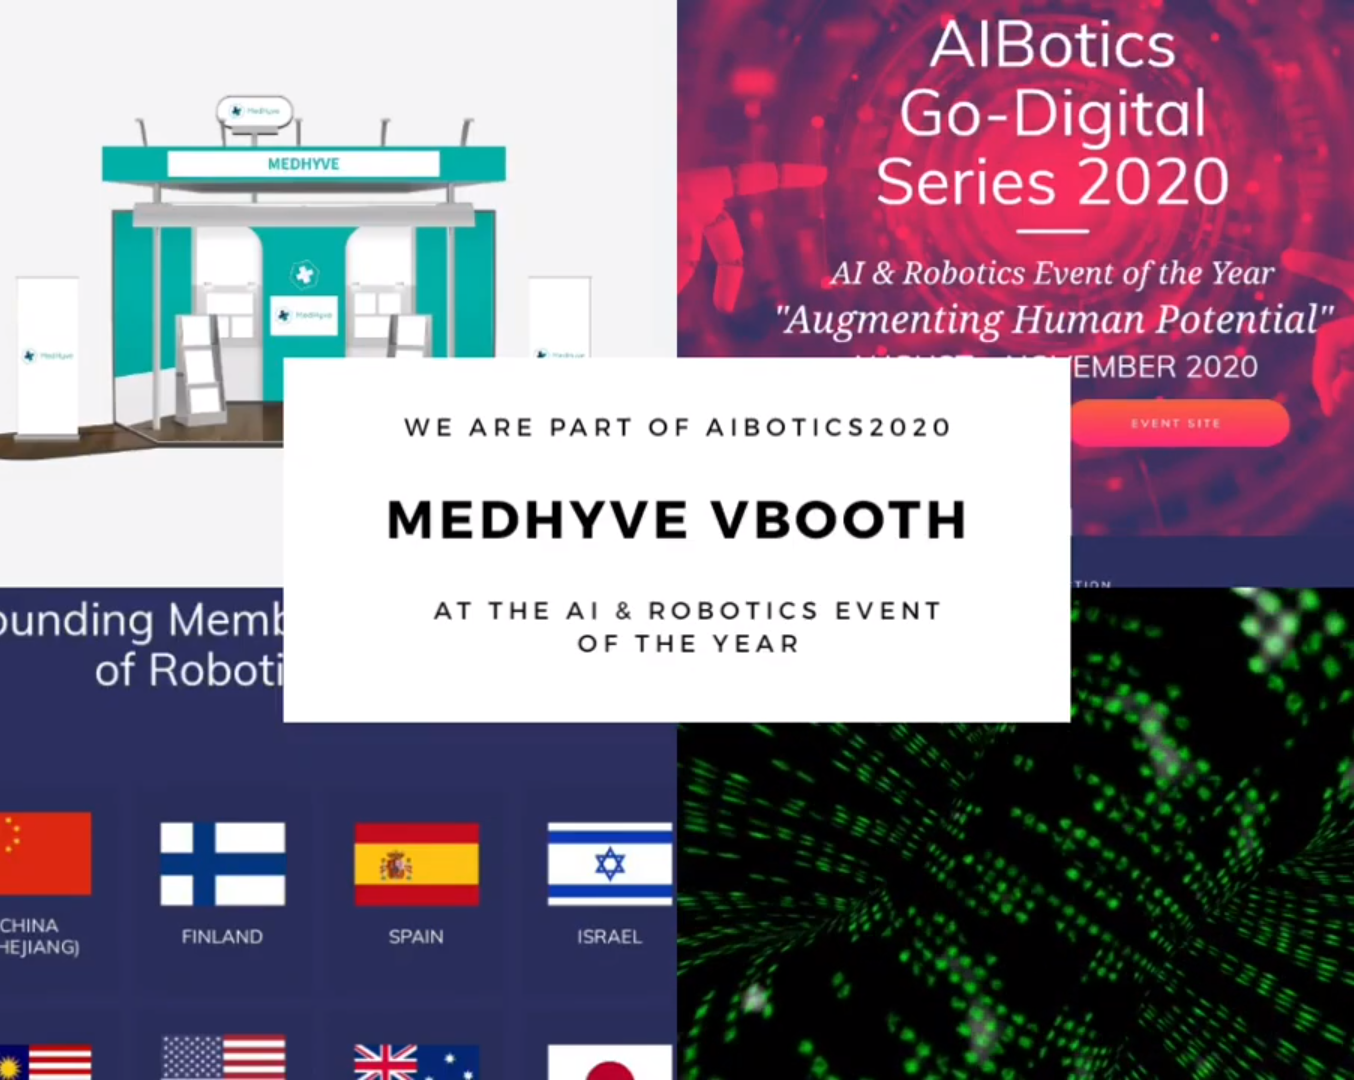 We are Part of AIBotics